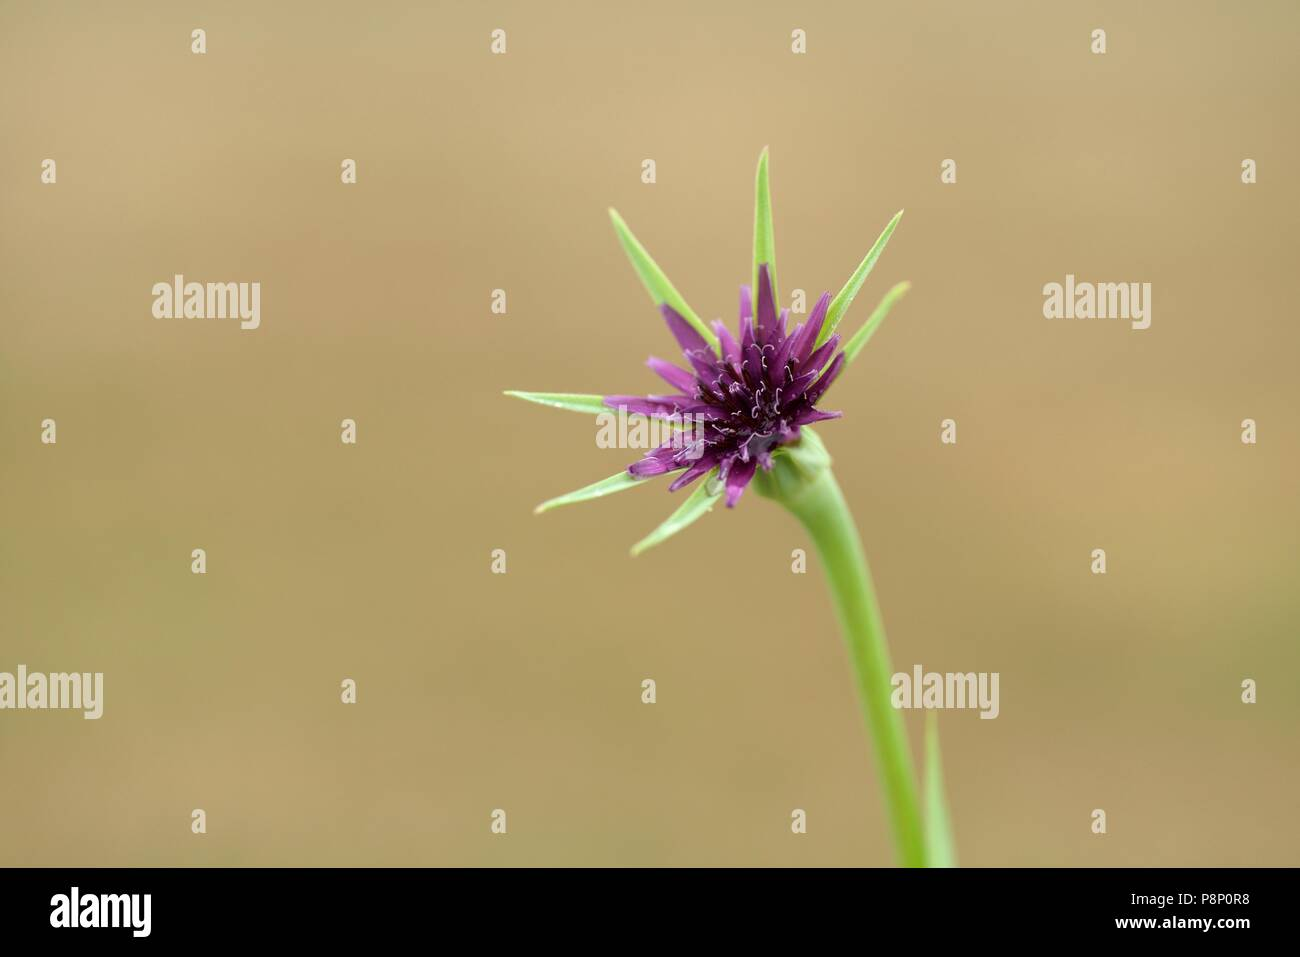 Detailed view on the inflorescence of Salsify - Stock Image